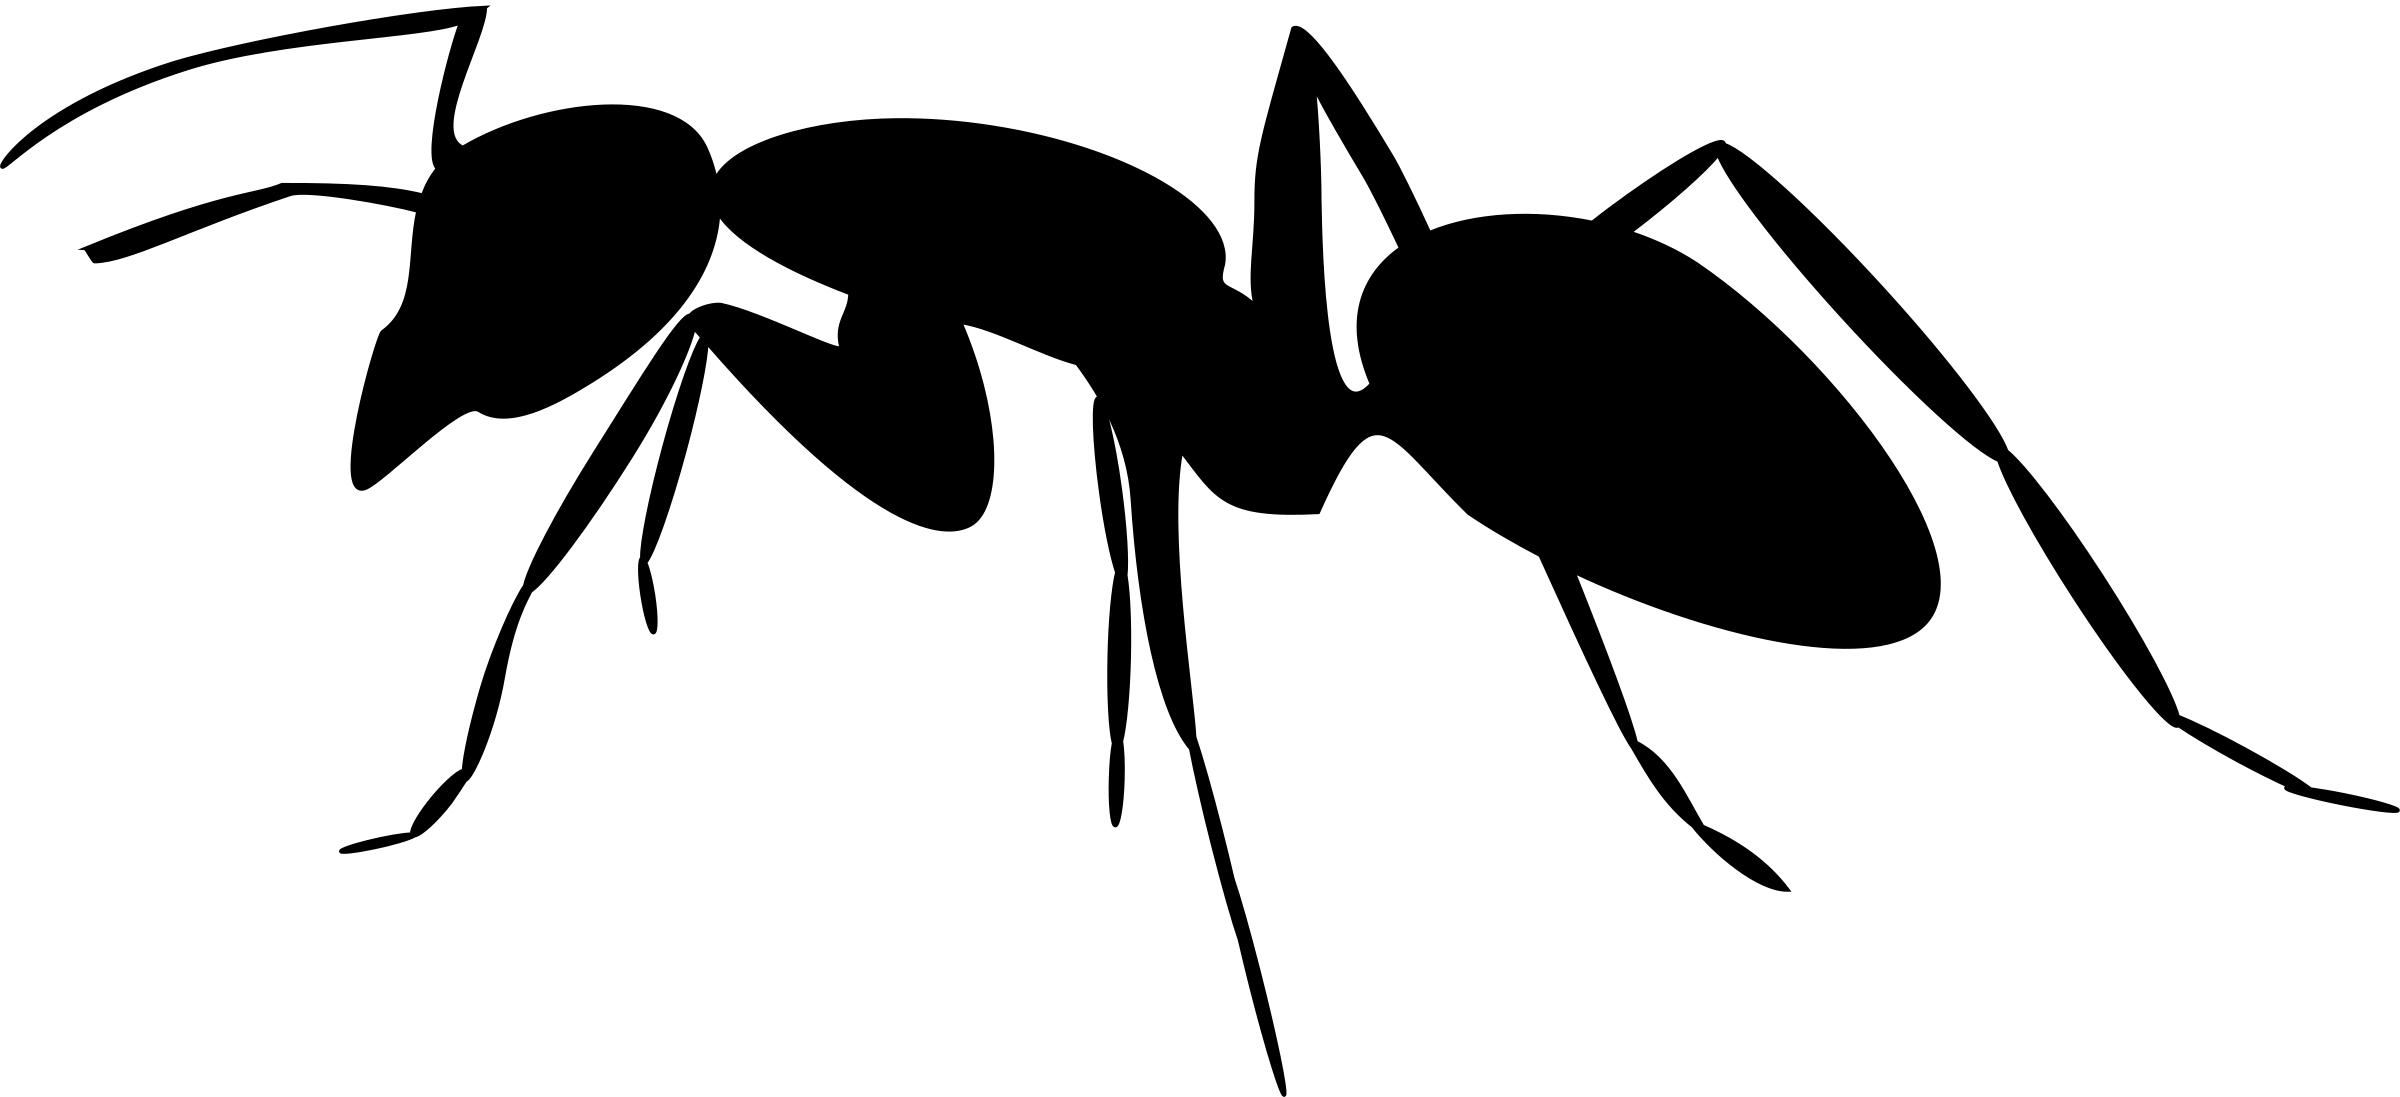 Ant clipart silhouette. Icons png free and